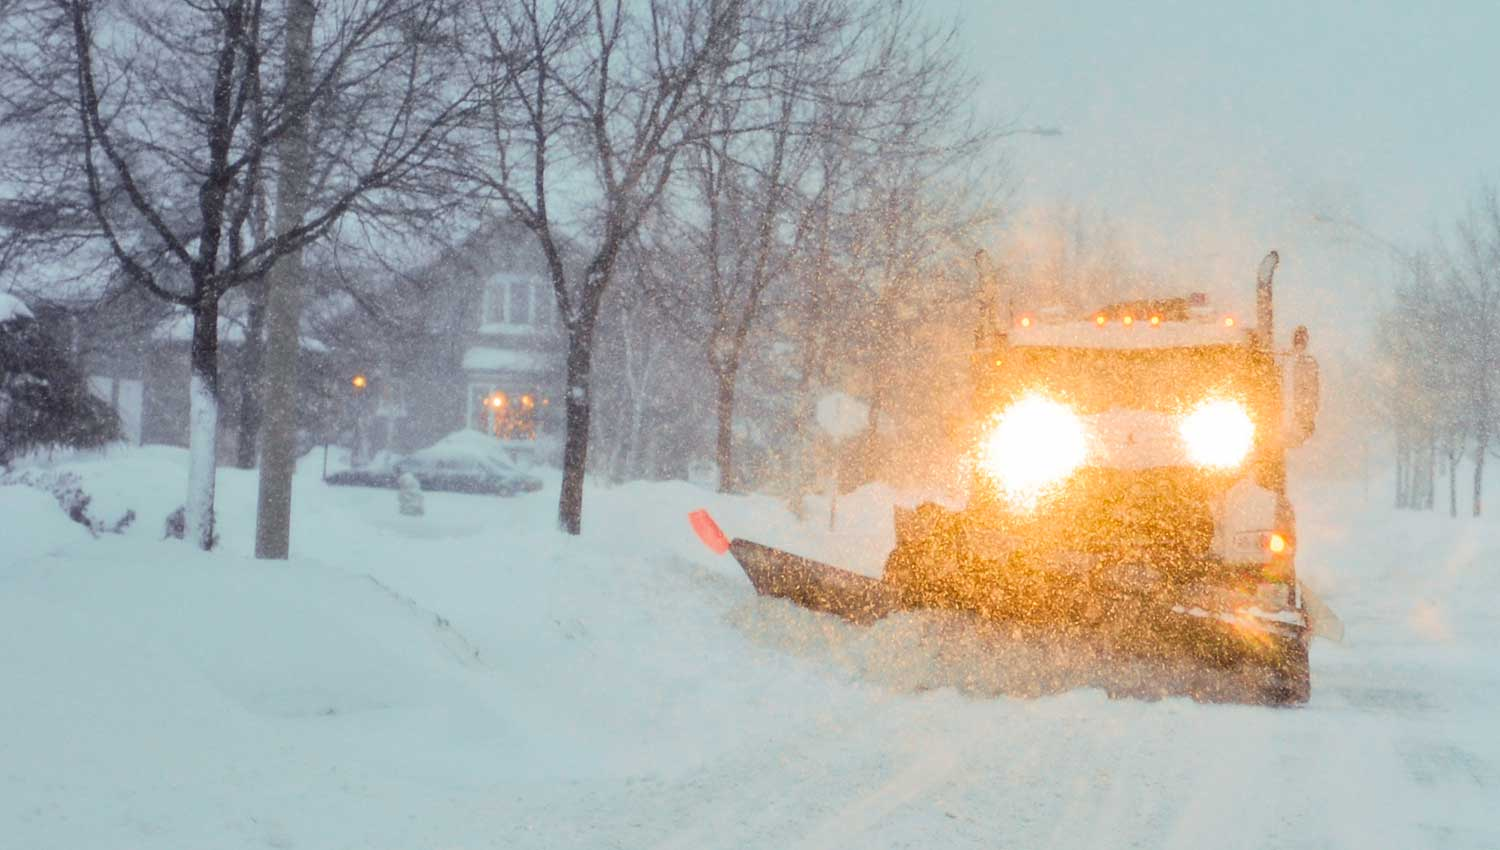 Snow Plowing in Wright Township PA | wrighttownship.org